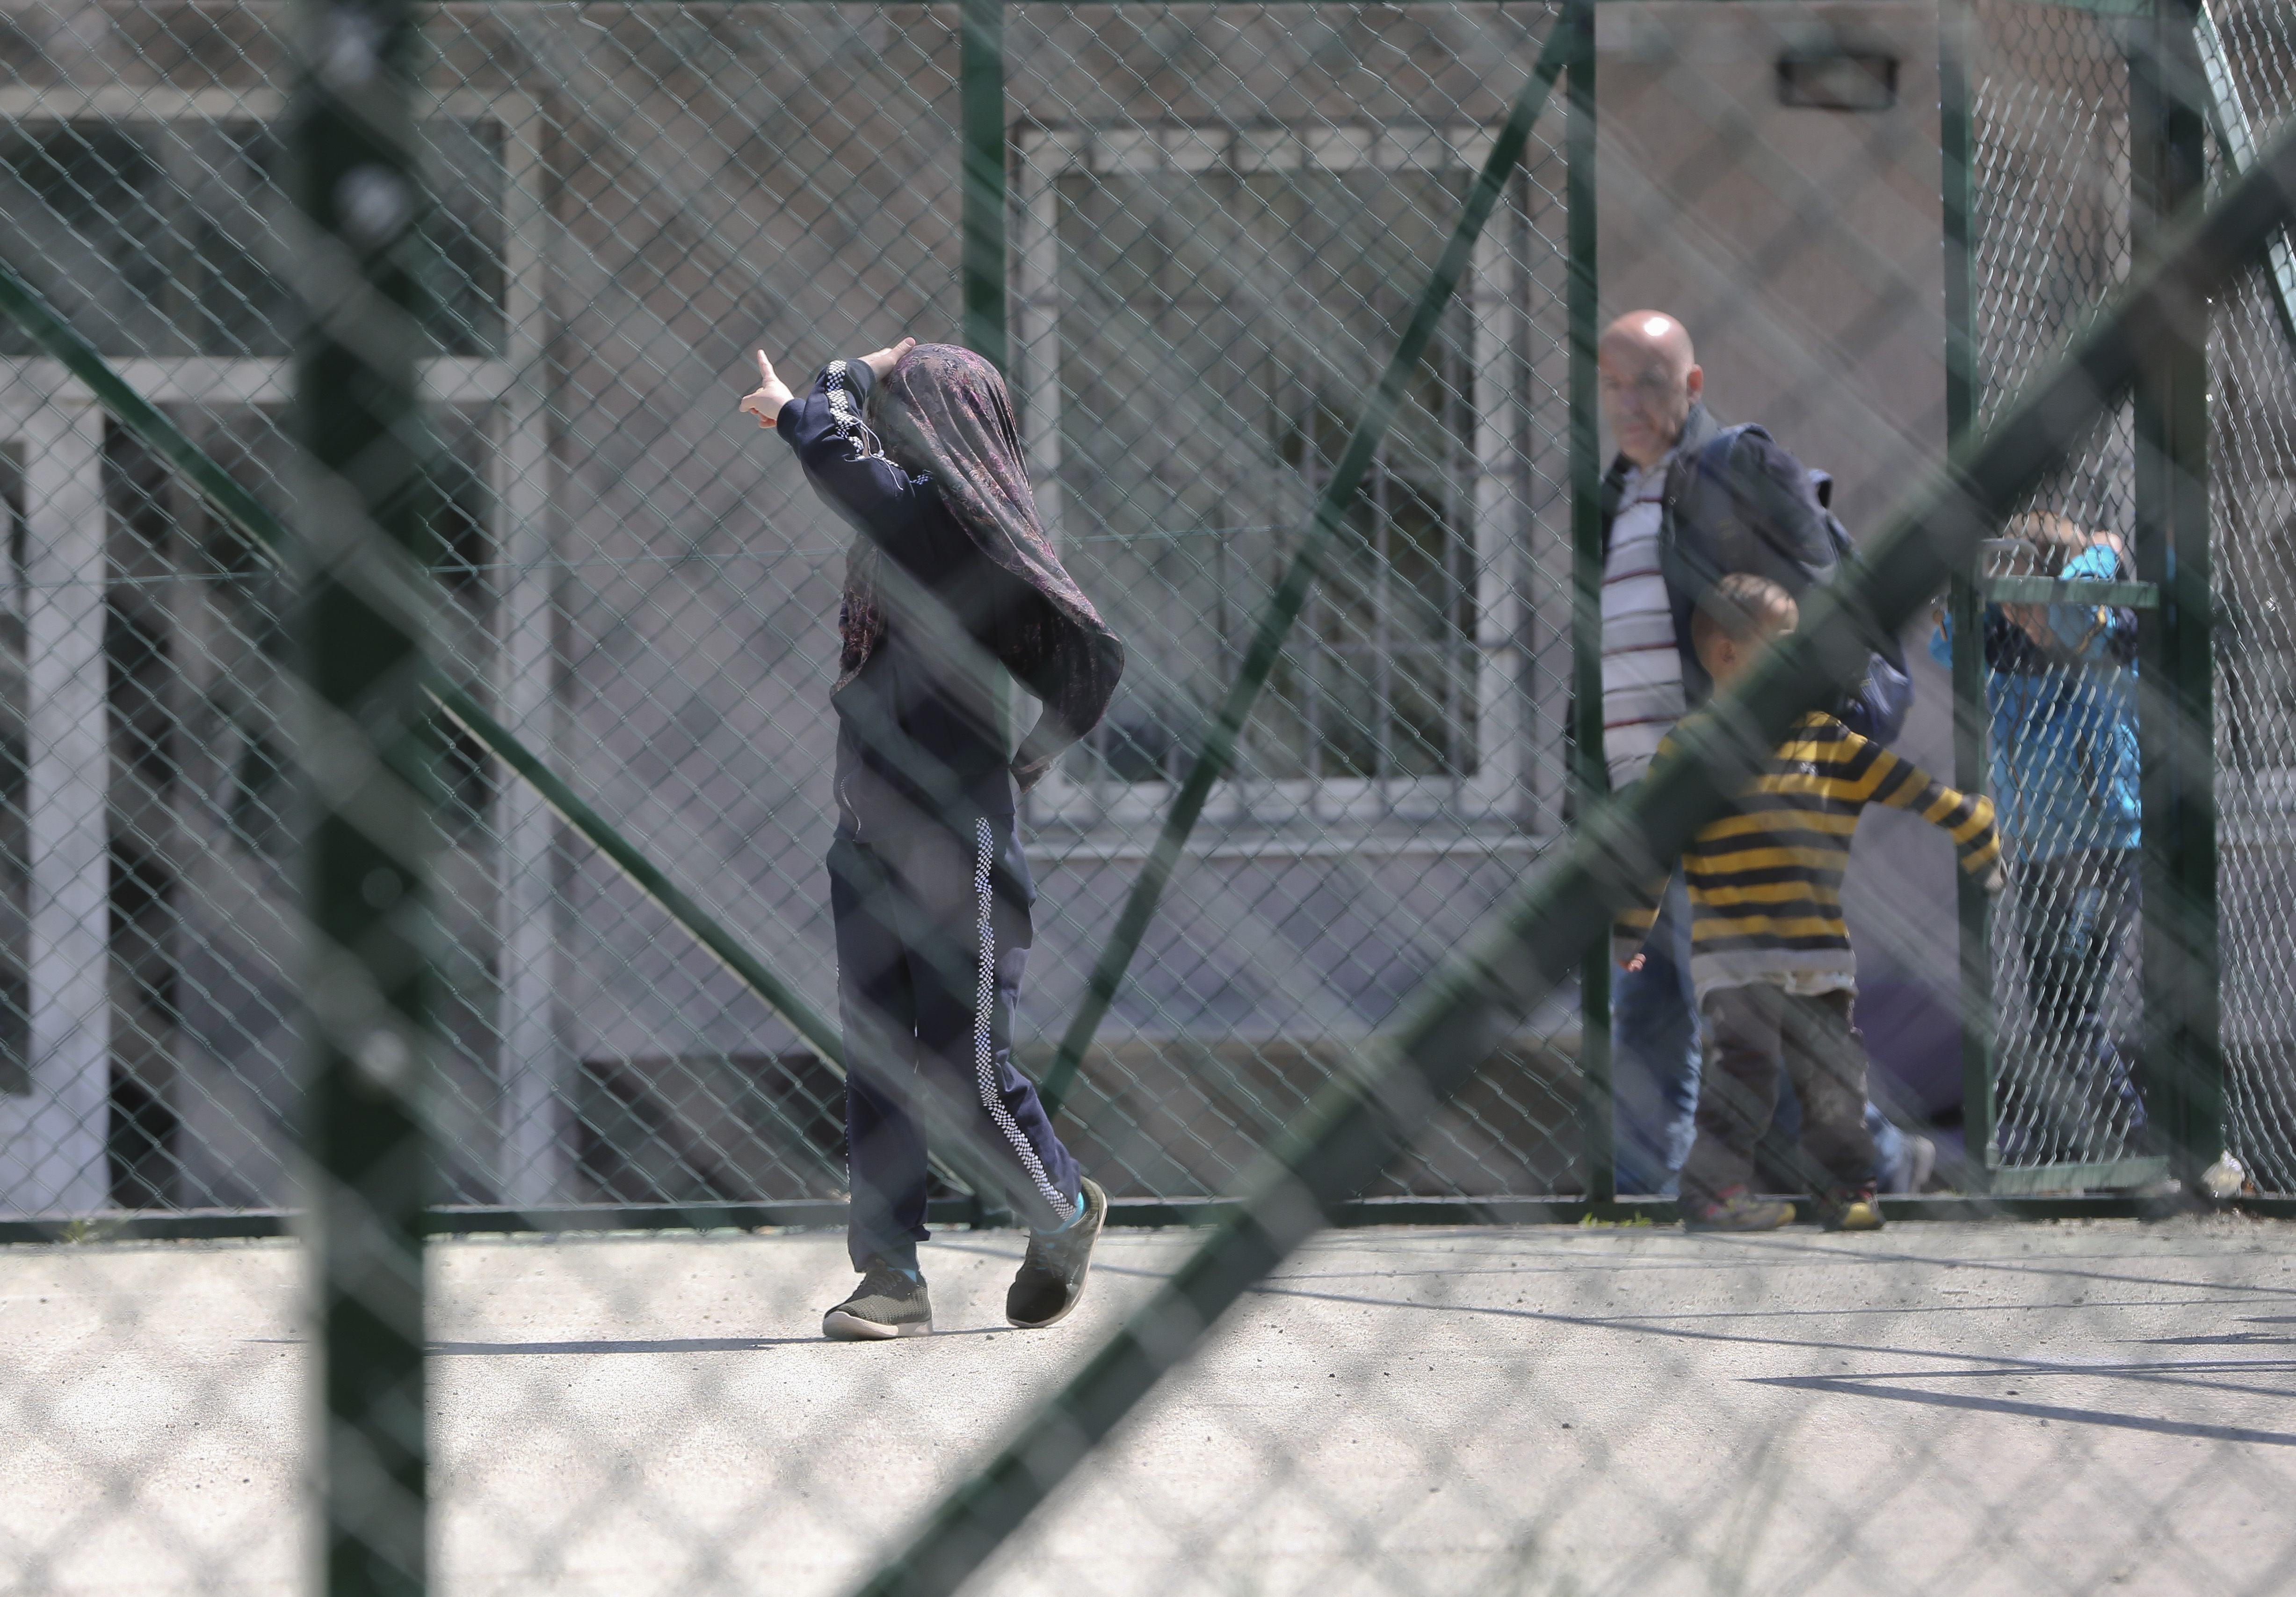 Group of children walk at a detention center where authorities have brought back from Syria 110 Kosovar citizens, mostly women and children in the village of Vranidol on Sunday, April 20, 2019.  Four suspected fighters have been arrested, but other returnees will be cared for, before being sent to homes over the coming days, according to Justice Minister Abelard Tahiri. (AP Photo/Visar Kryeziu)